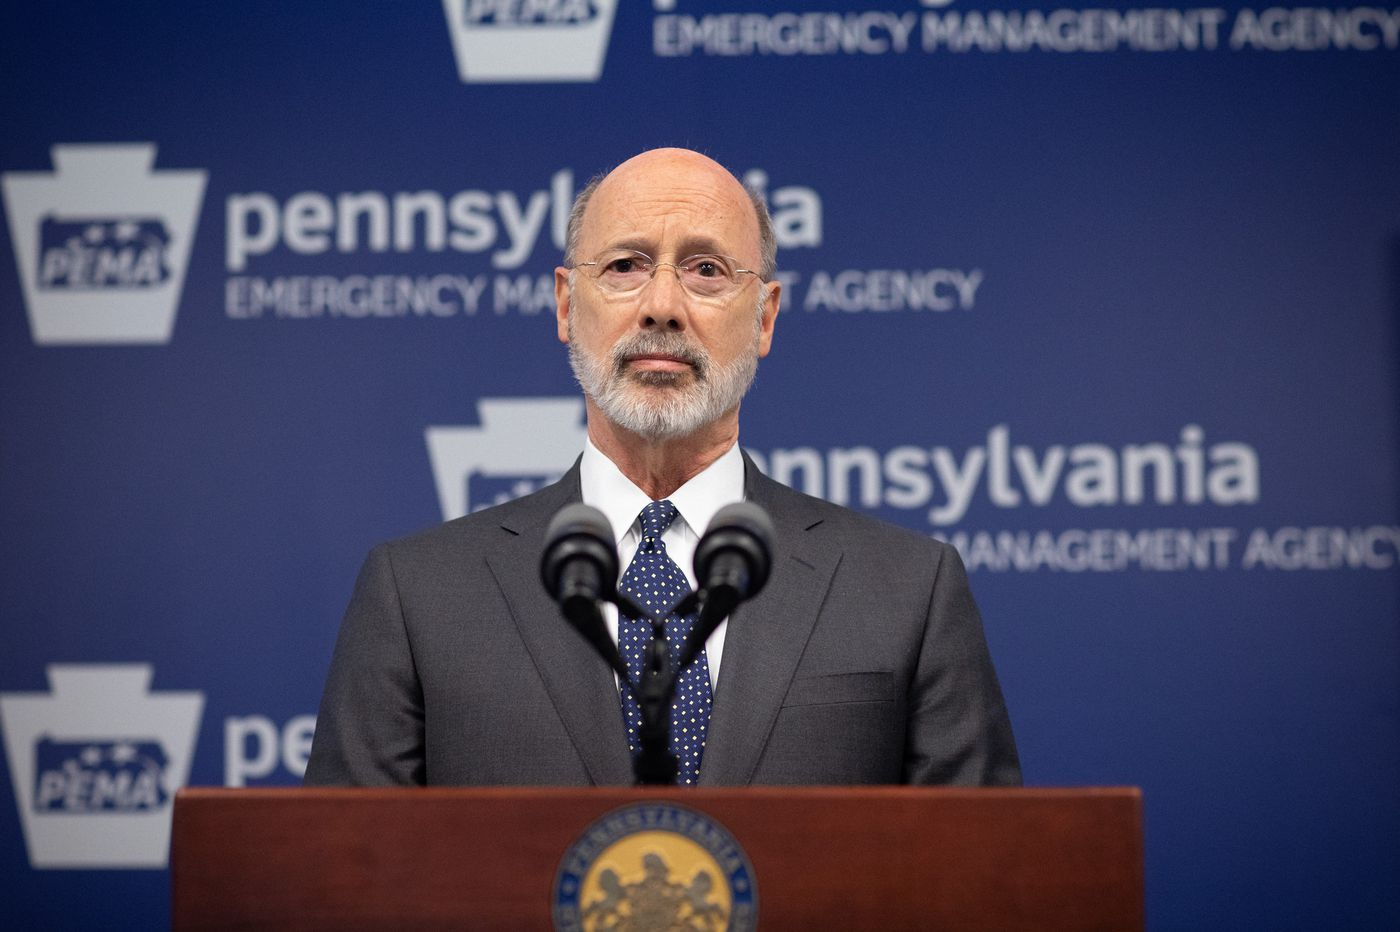 Can Gov. Wolf withhold coronavirus recovery money from counties that defy shutdown orders? Yes, experts say, but expect pushback.